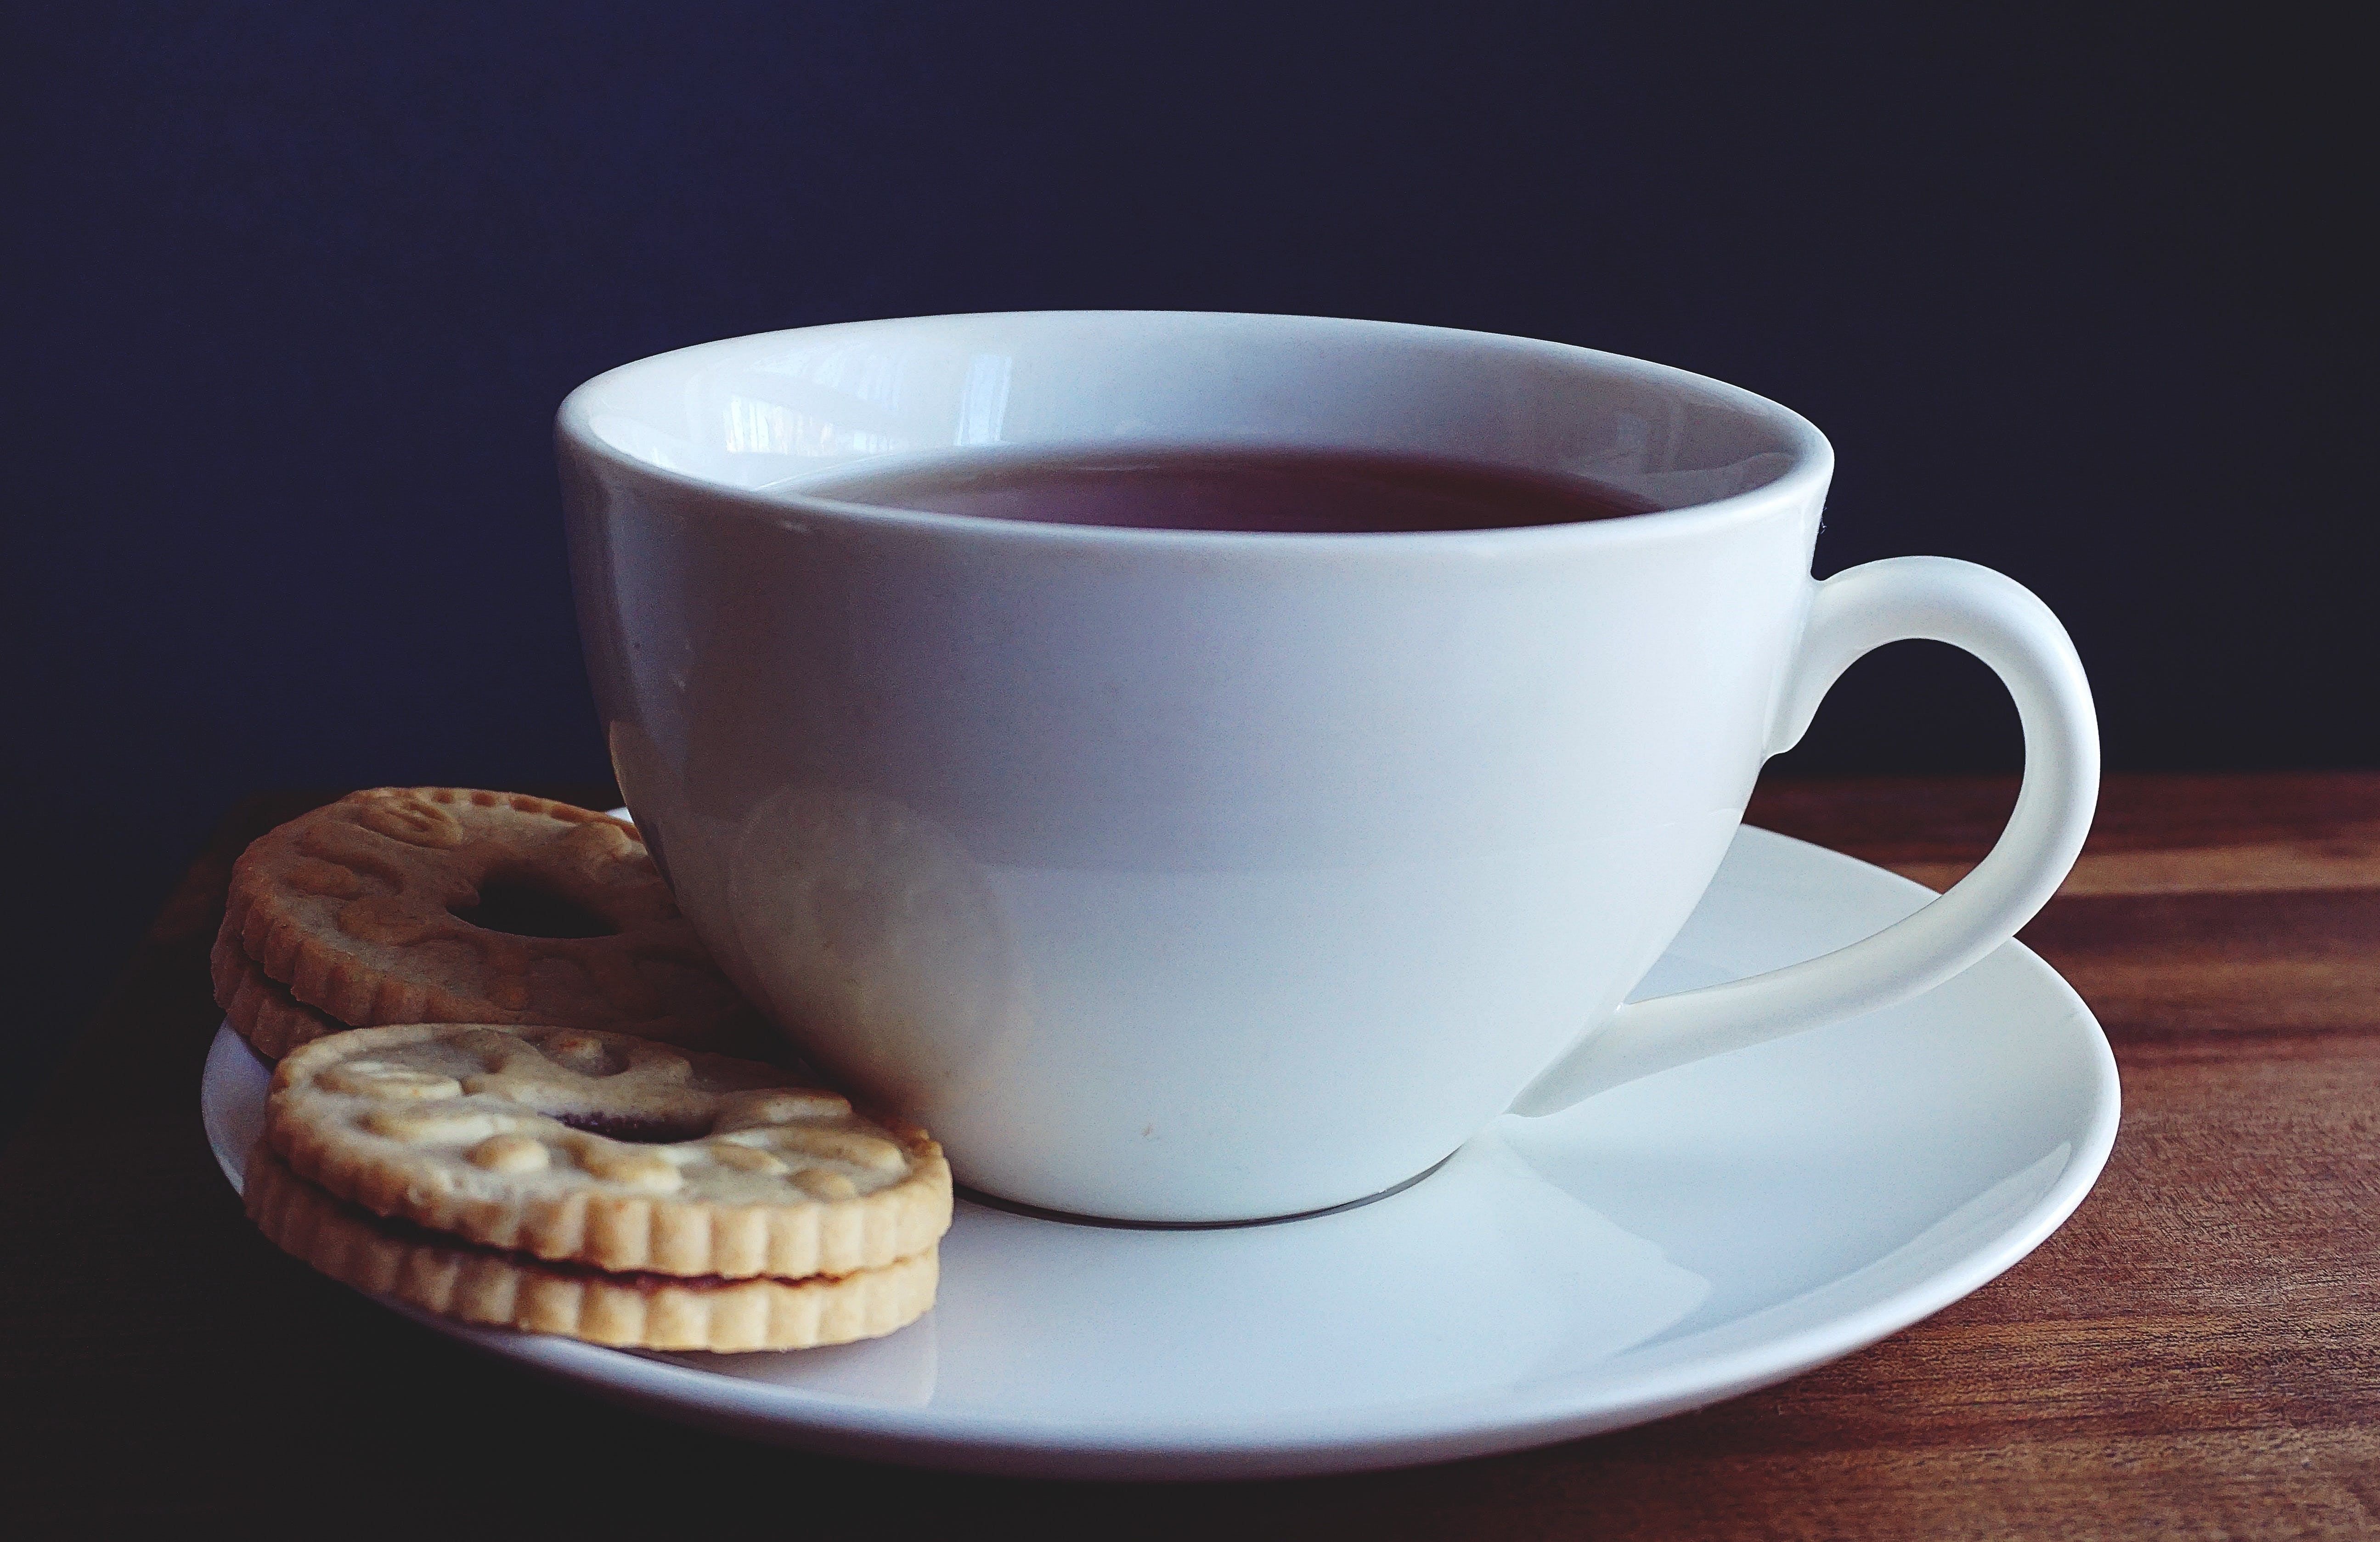 Close-up Photography of Cup of Coffee Near Biscuits